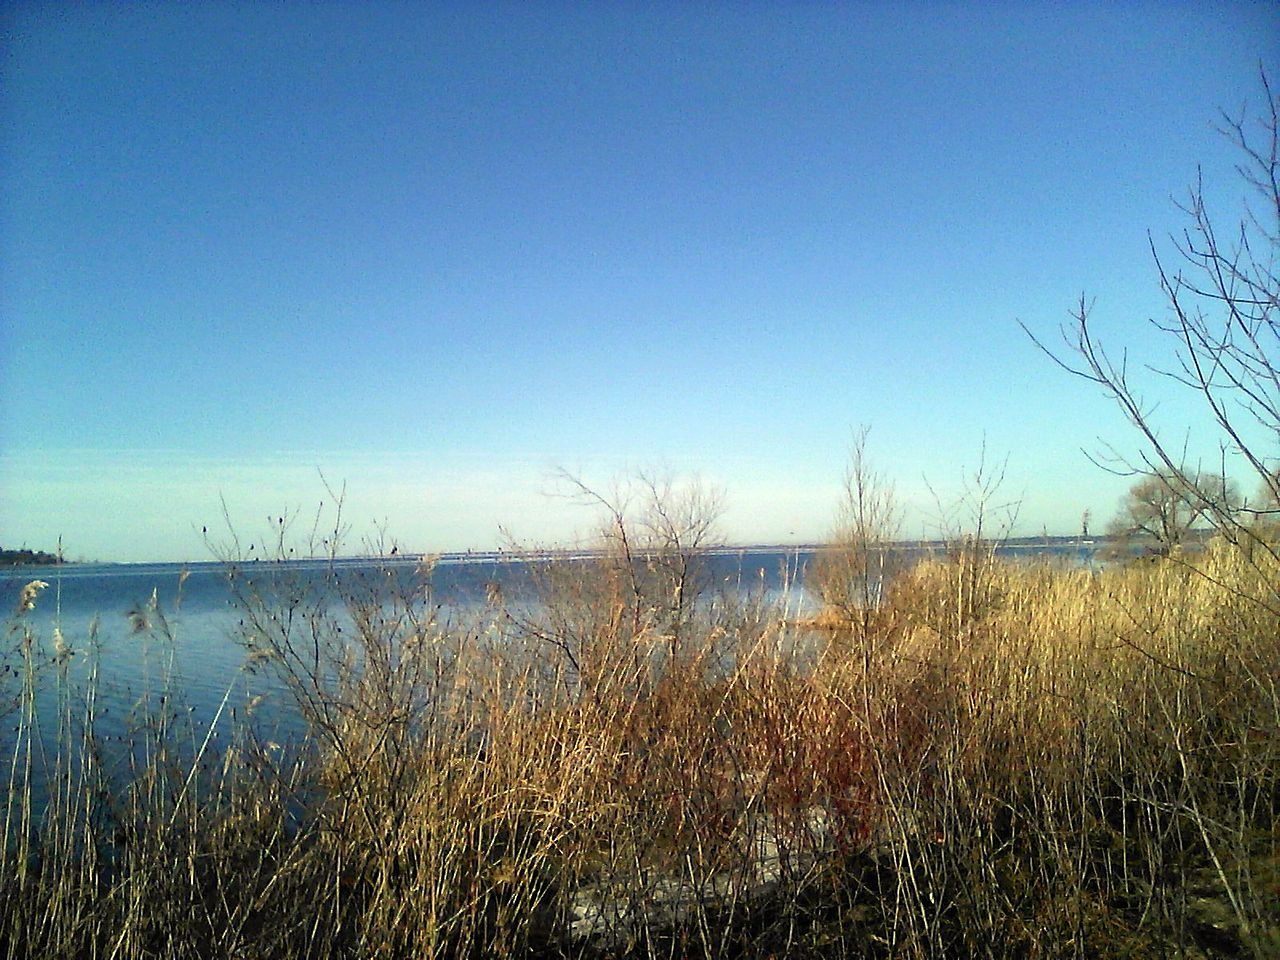 photo: Looking over Little Bay de Noc from Gladstone, Michigan, USA. Photo by San906/wiki.